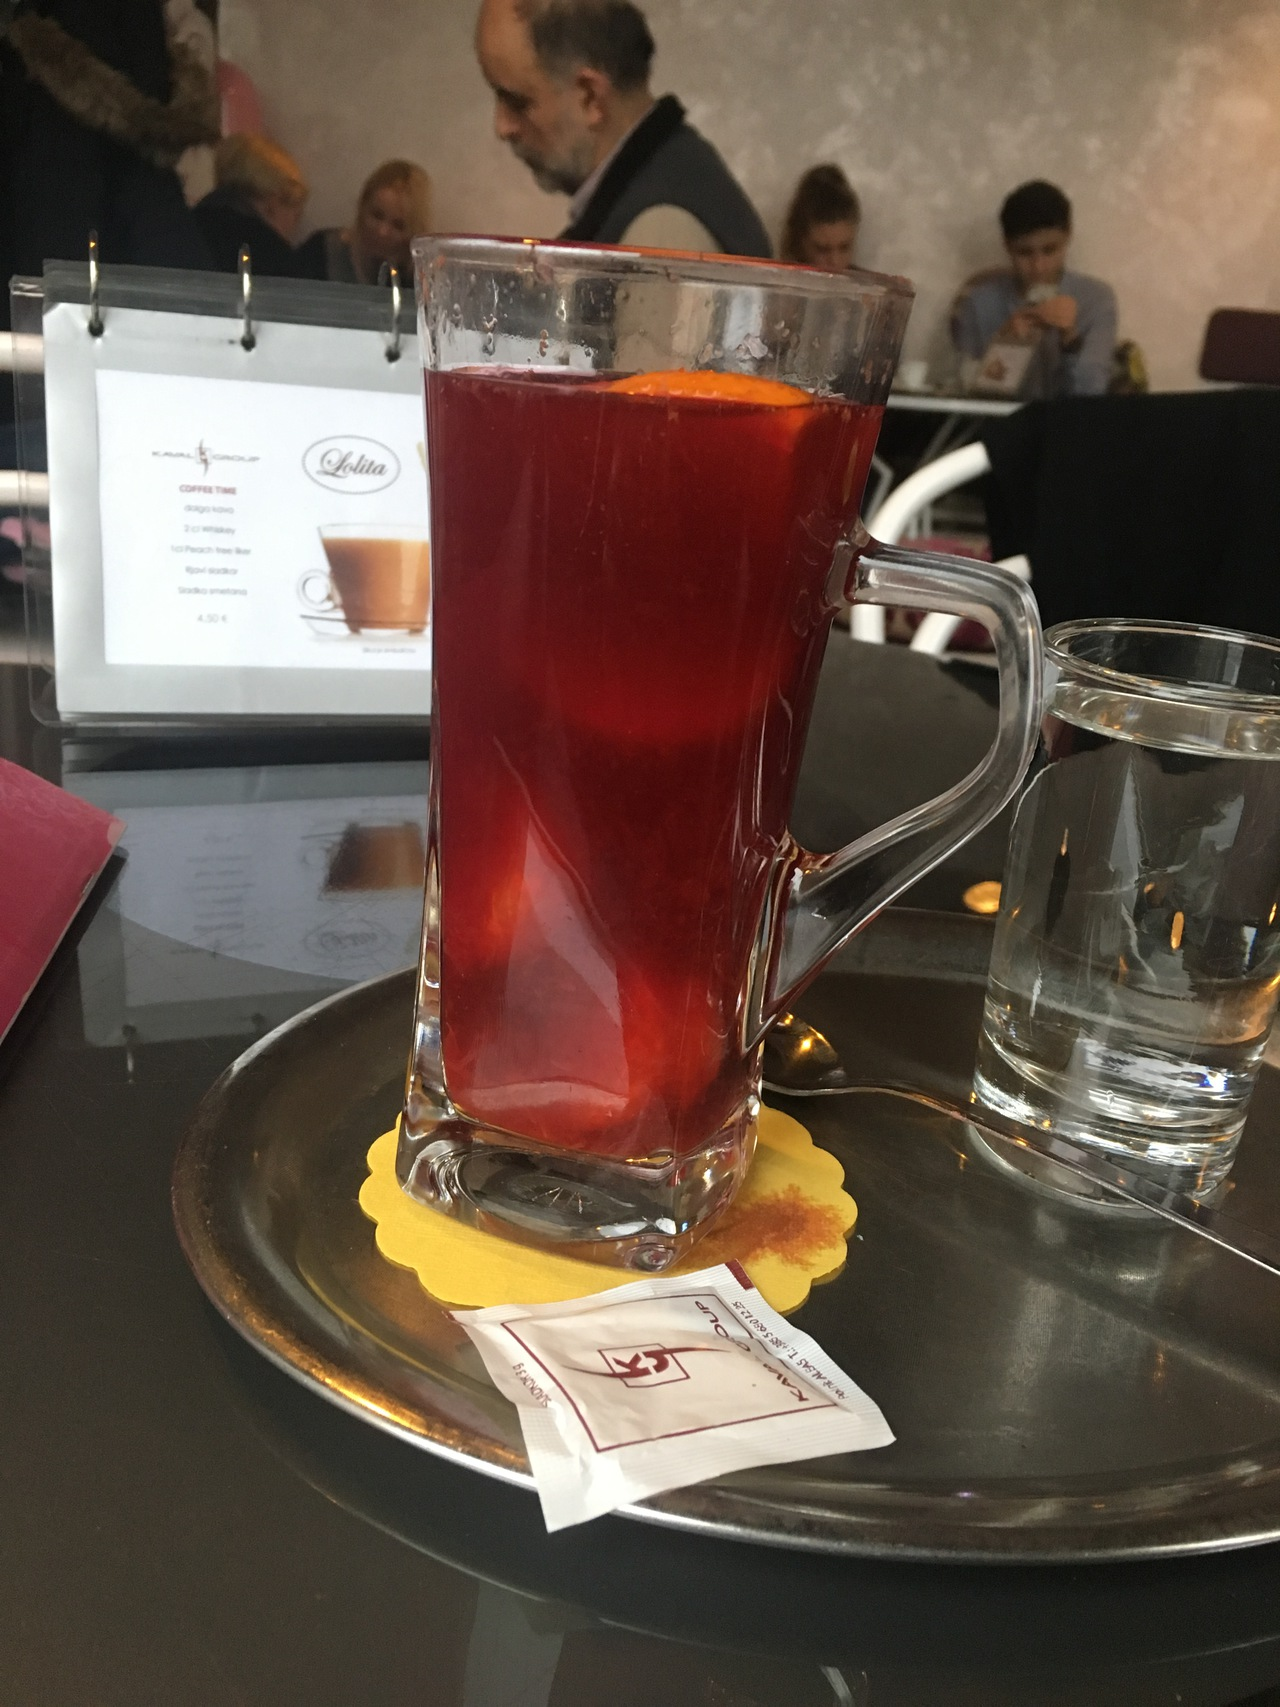 A tall glass filled with red punch. It has fruits swimming in the punch